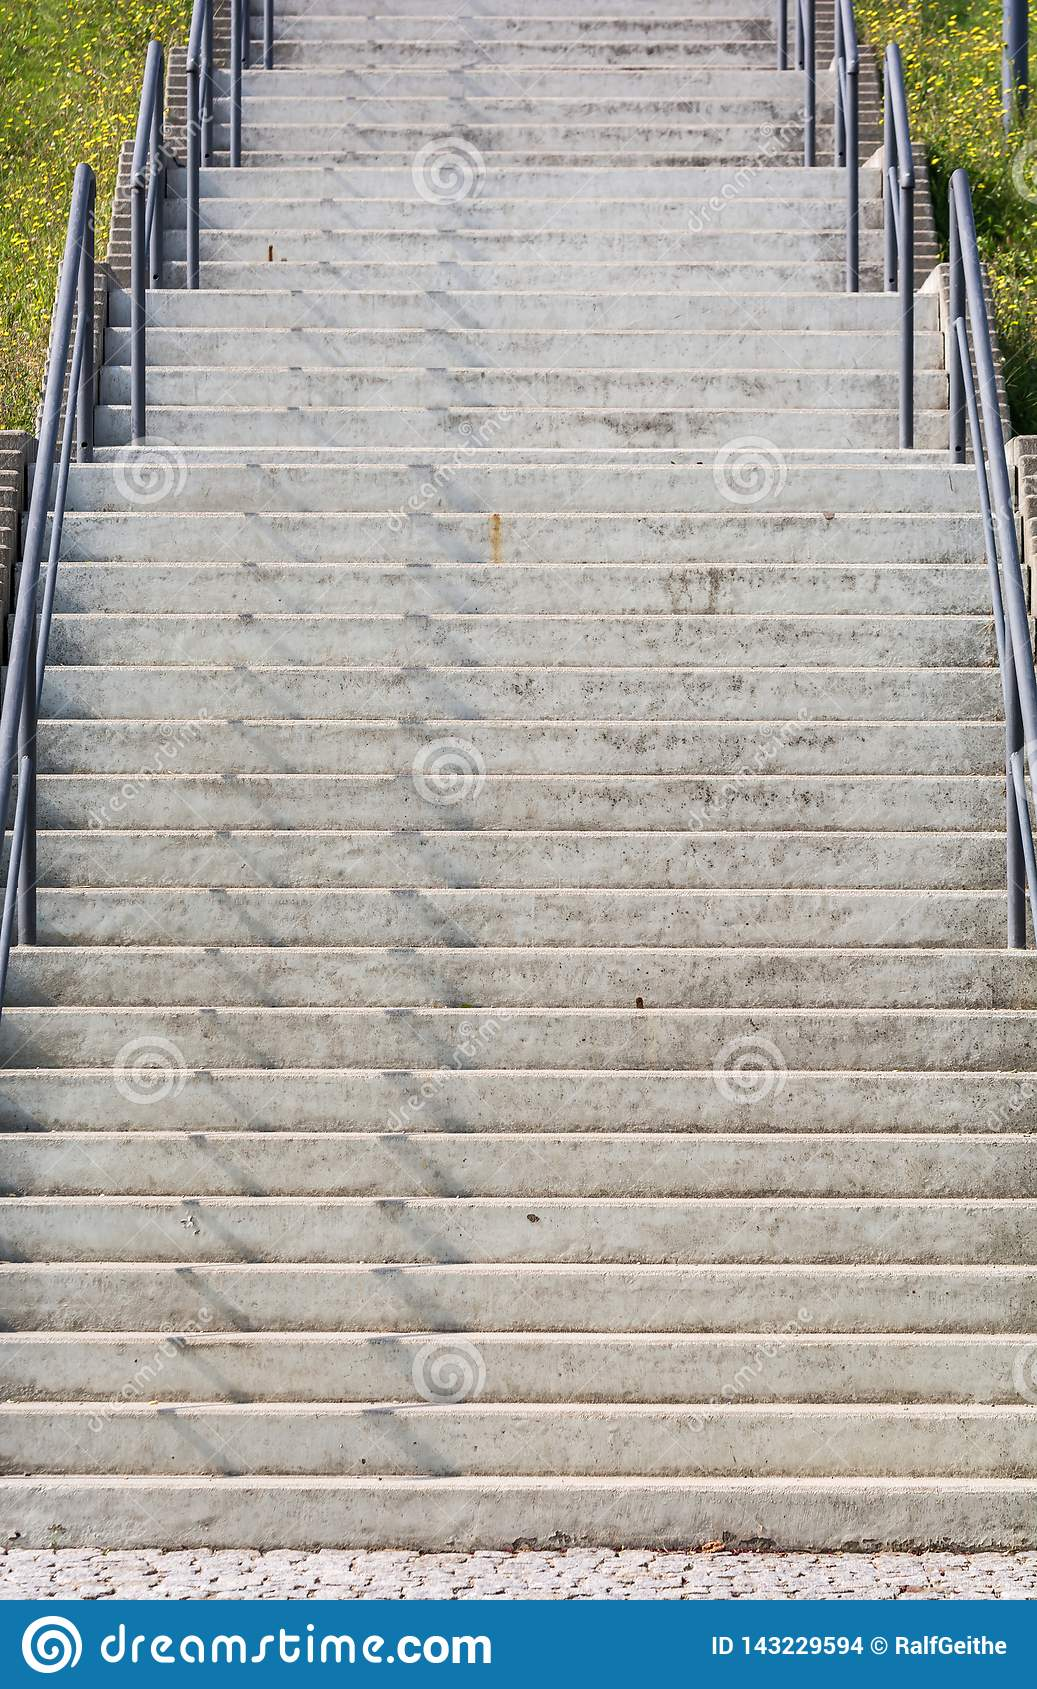 Large staircase made of concrete as a sign of the gradual ascent